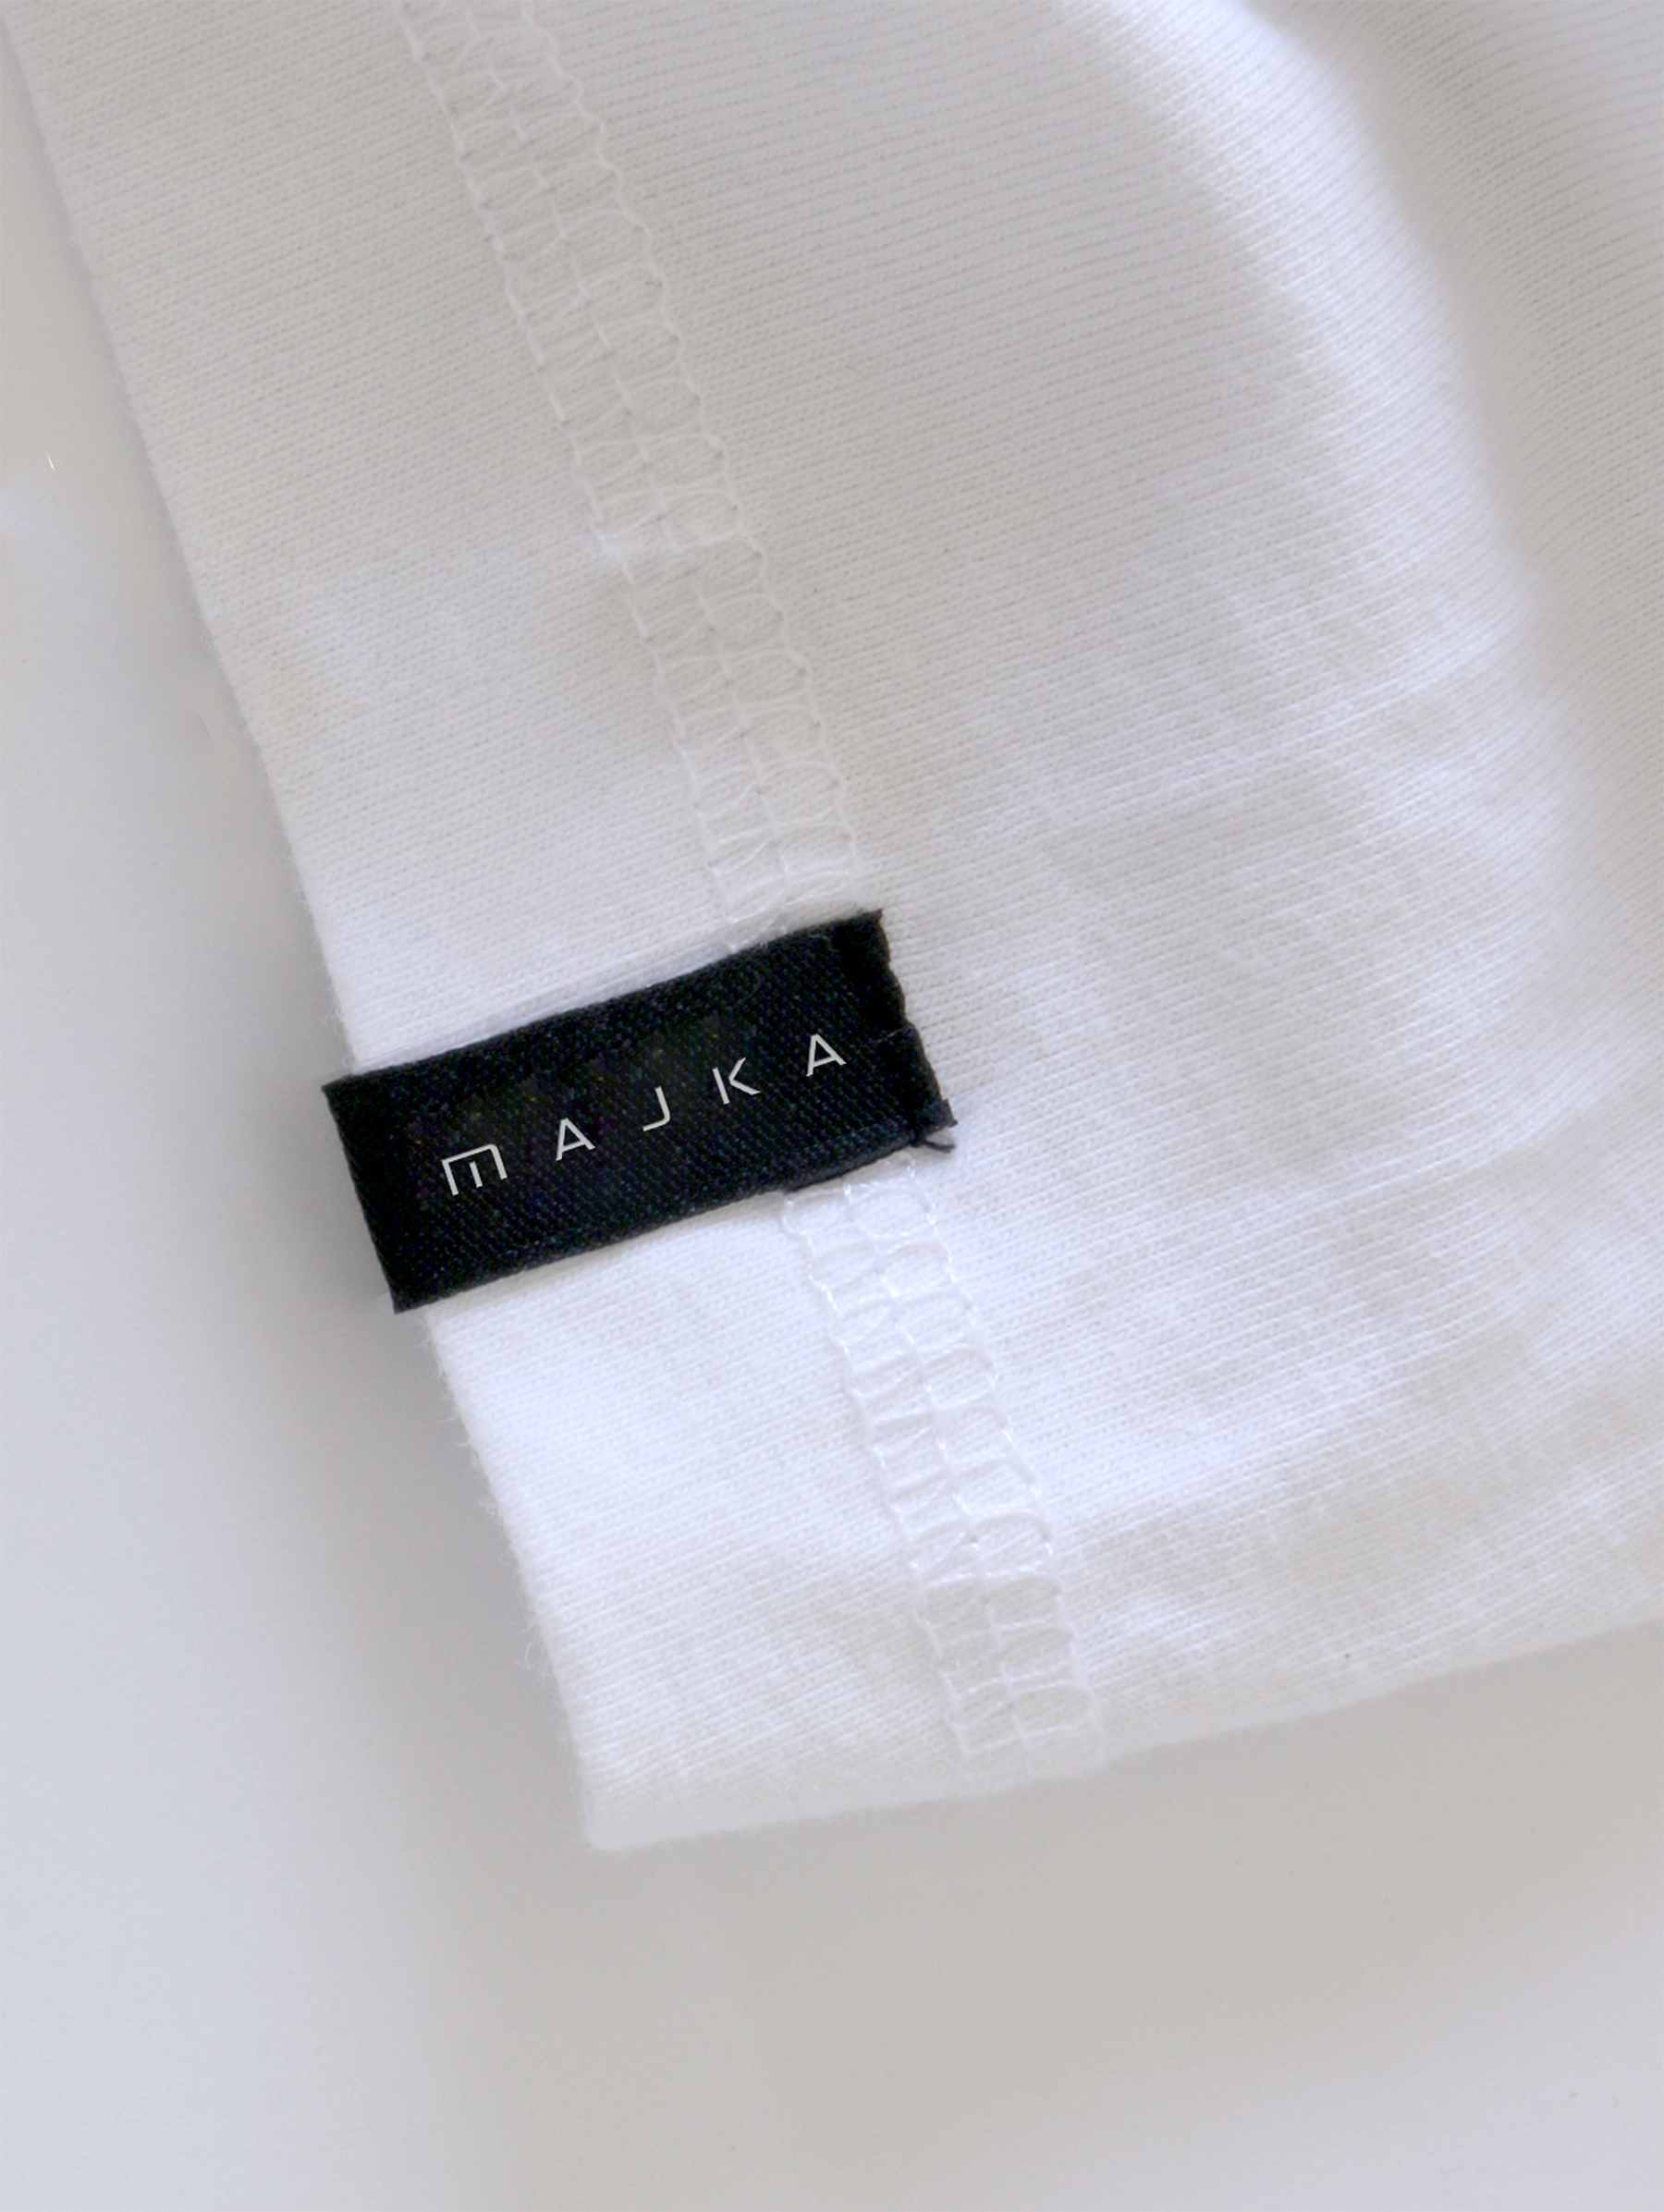 Die-Free-Studios-Majka-Logo-Design-Clothing-Label.jpg